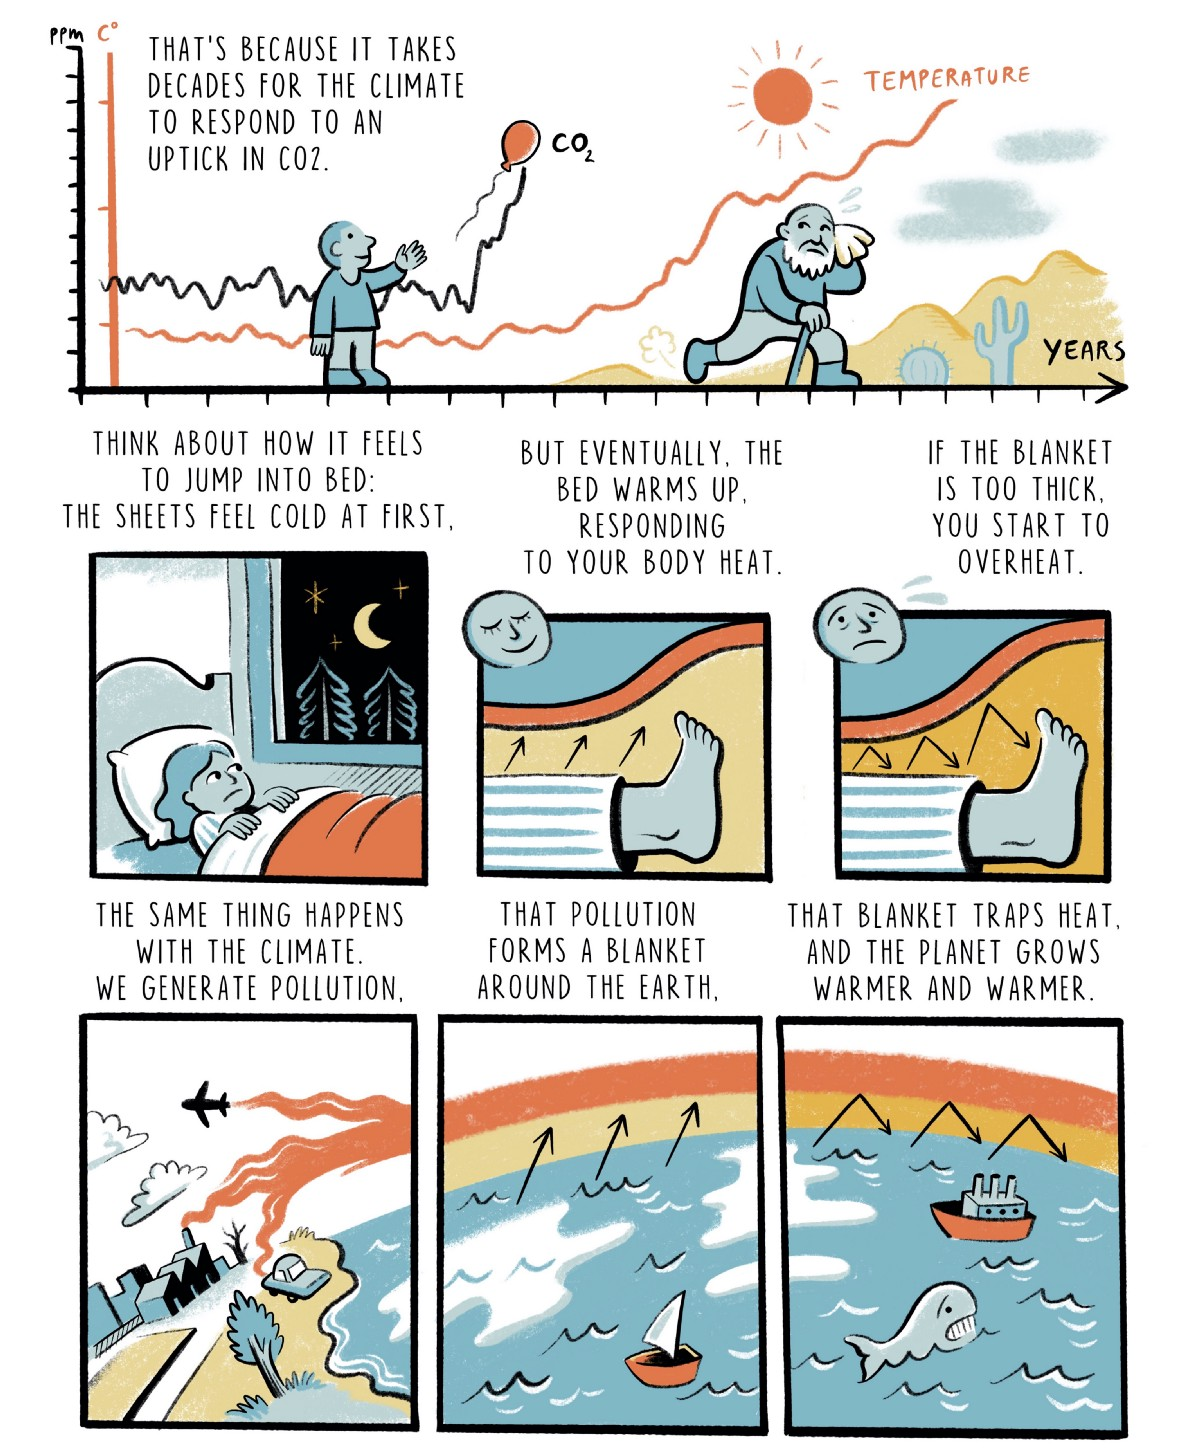 Cartoonist Explains Climate Change Comic Strip Nexus Media News